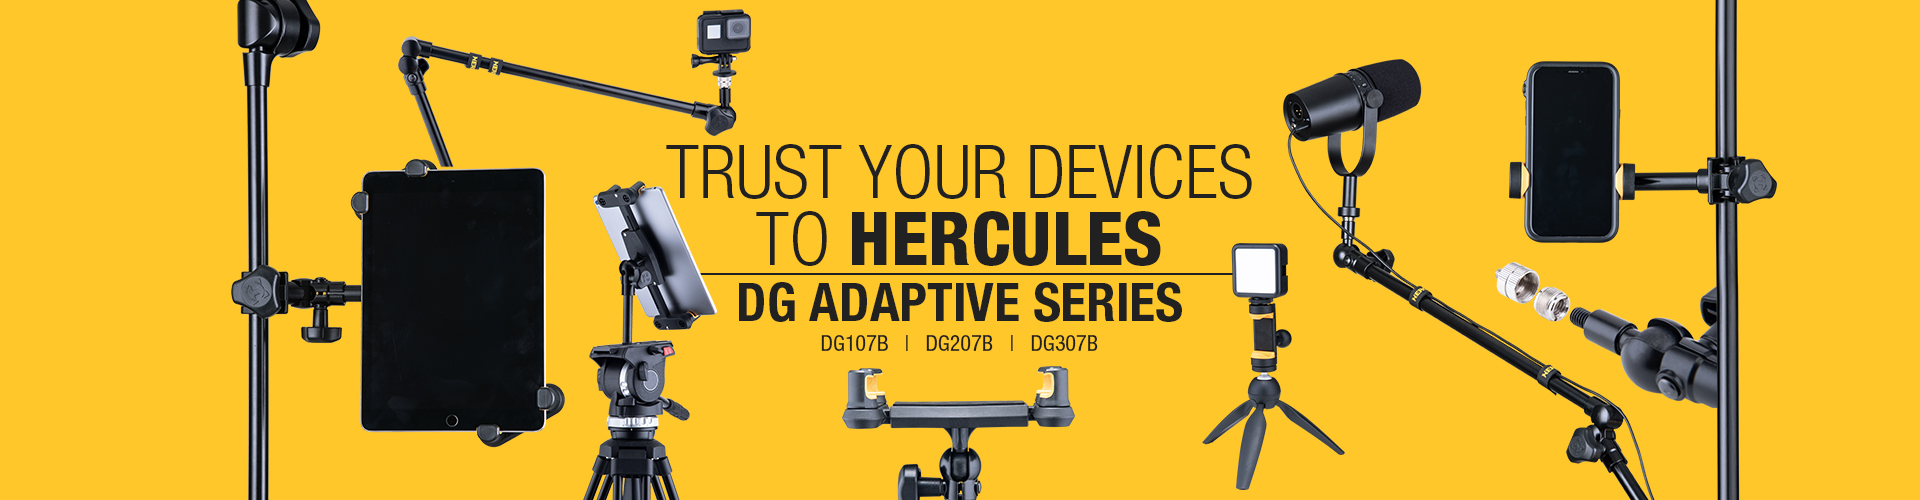 Adaptive Series Device Holders Press Release